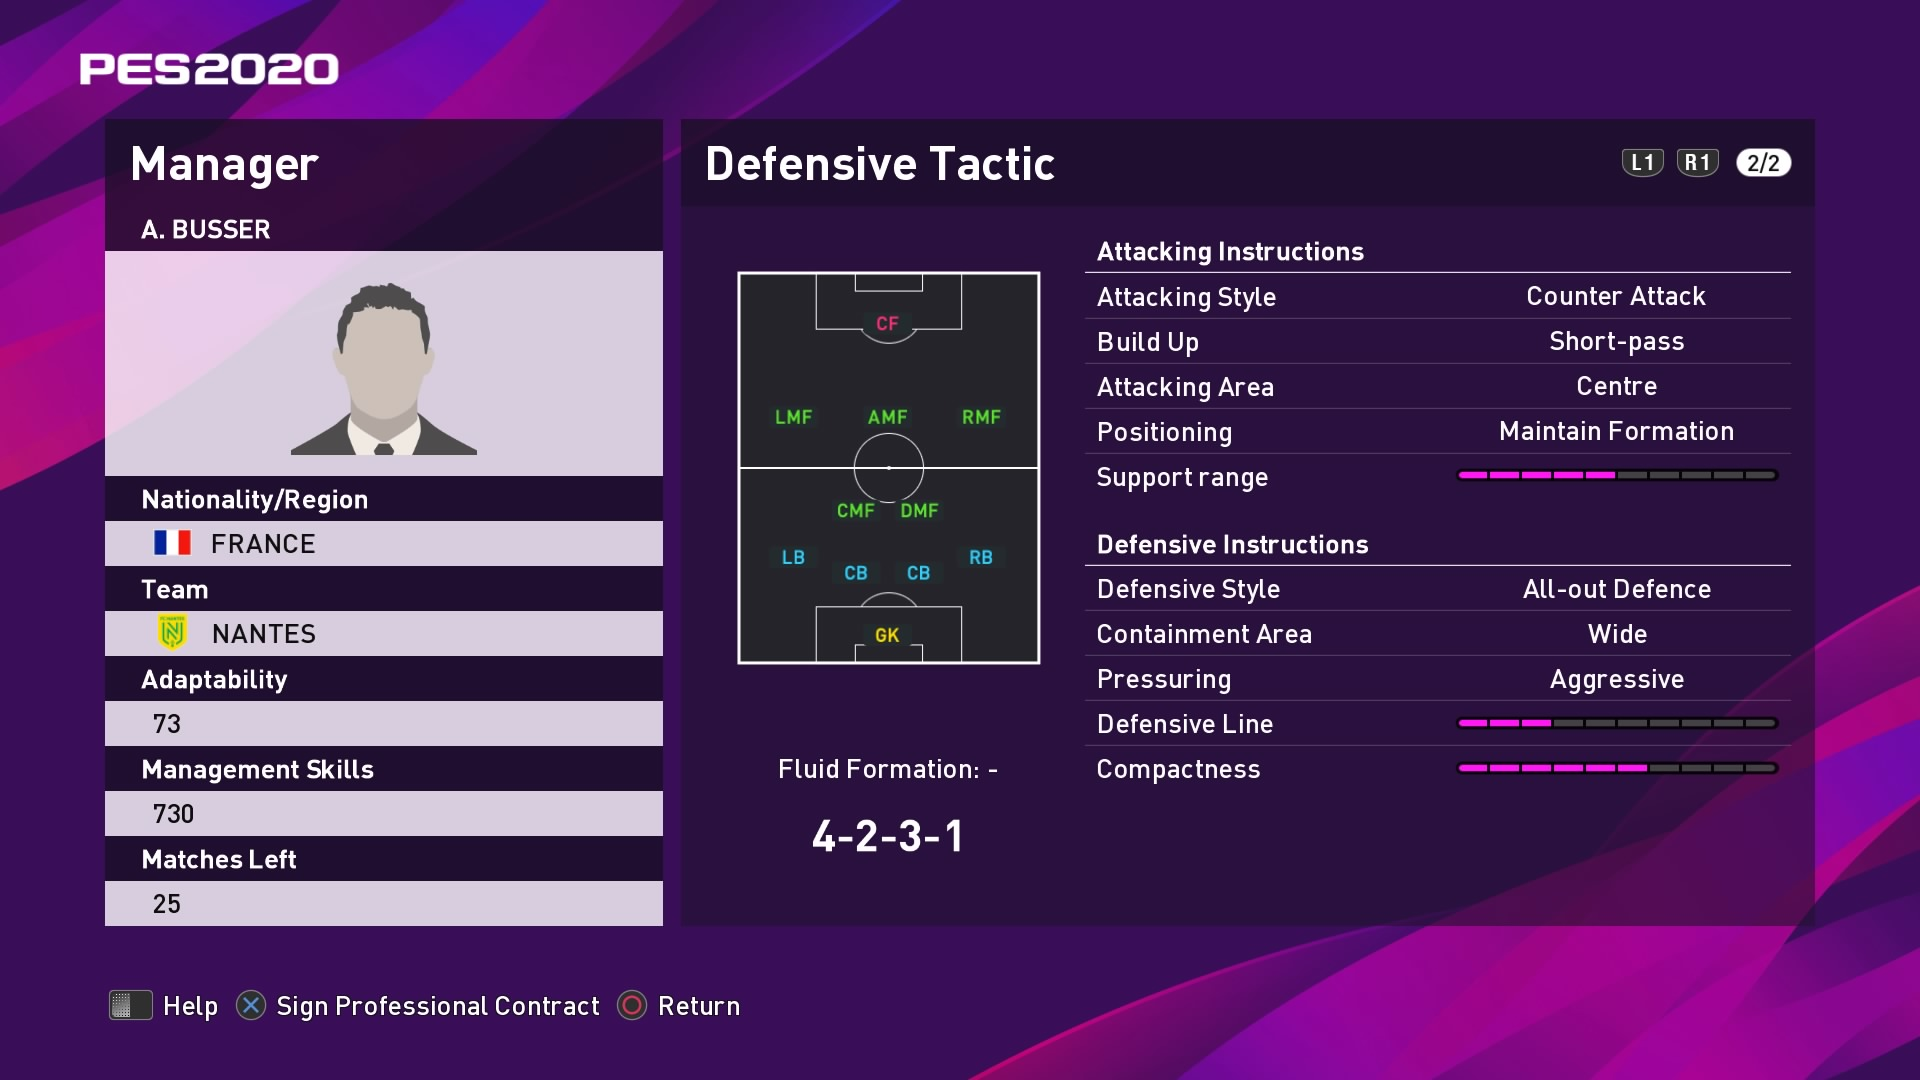 A. Busser (Christian Gourcuff) Defensive Tactic in PES 2020 myClub